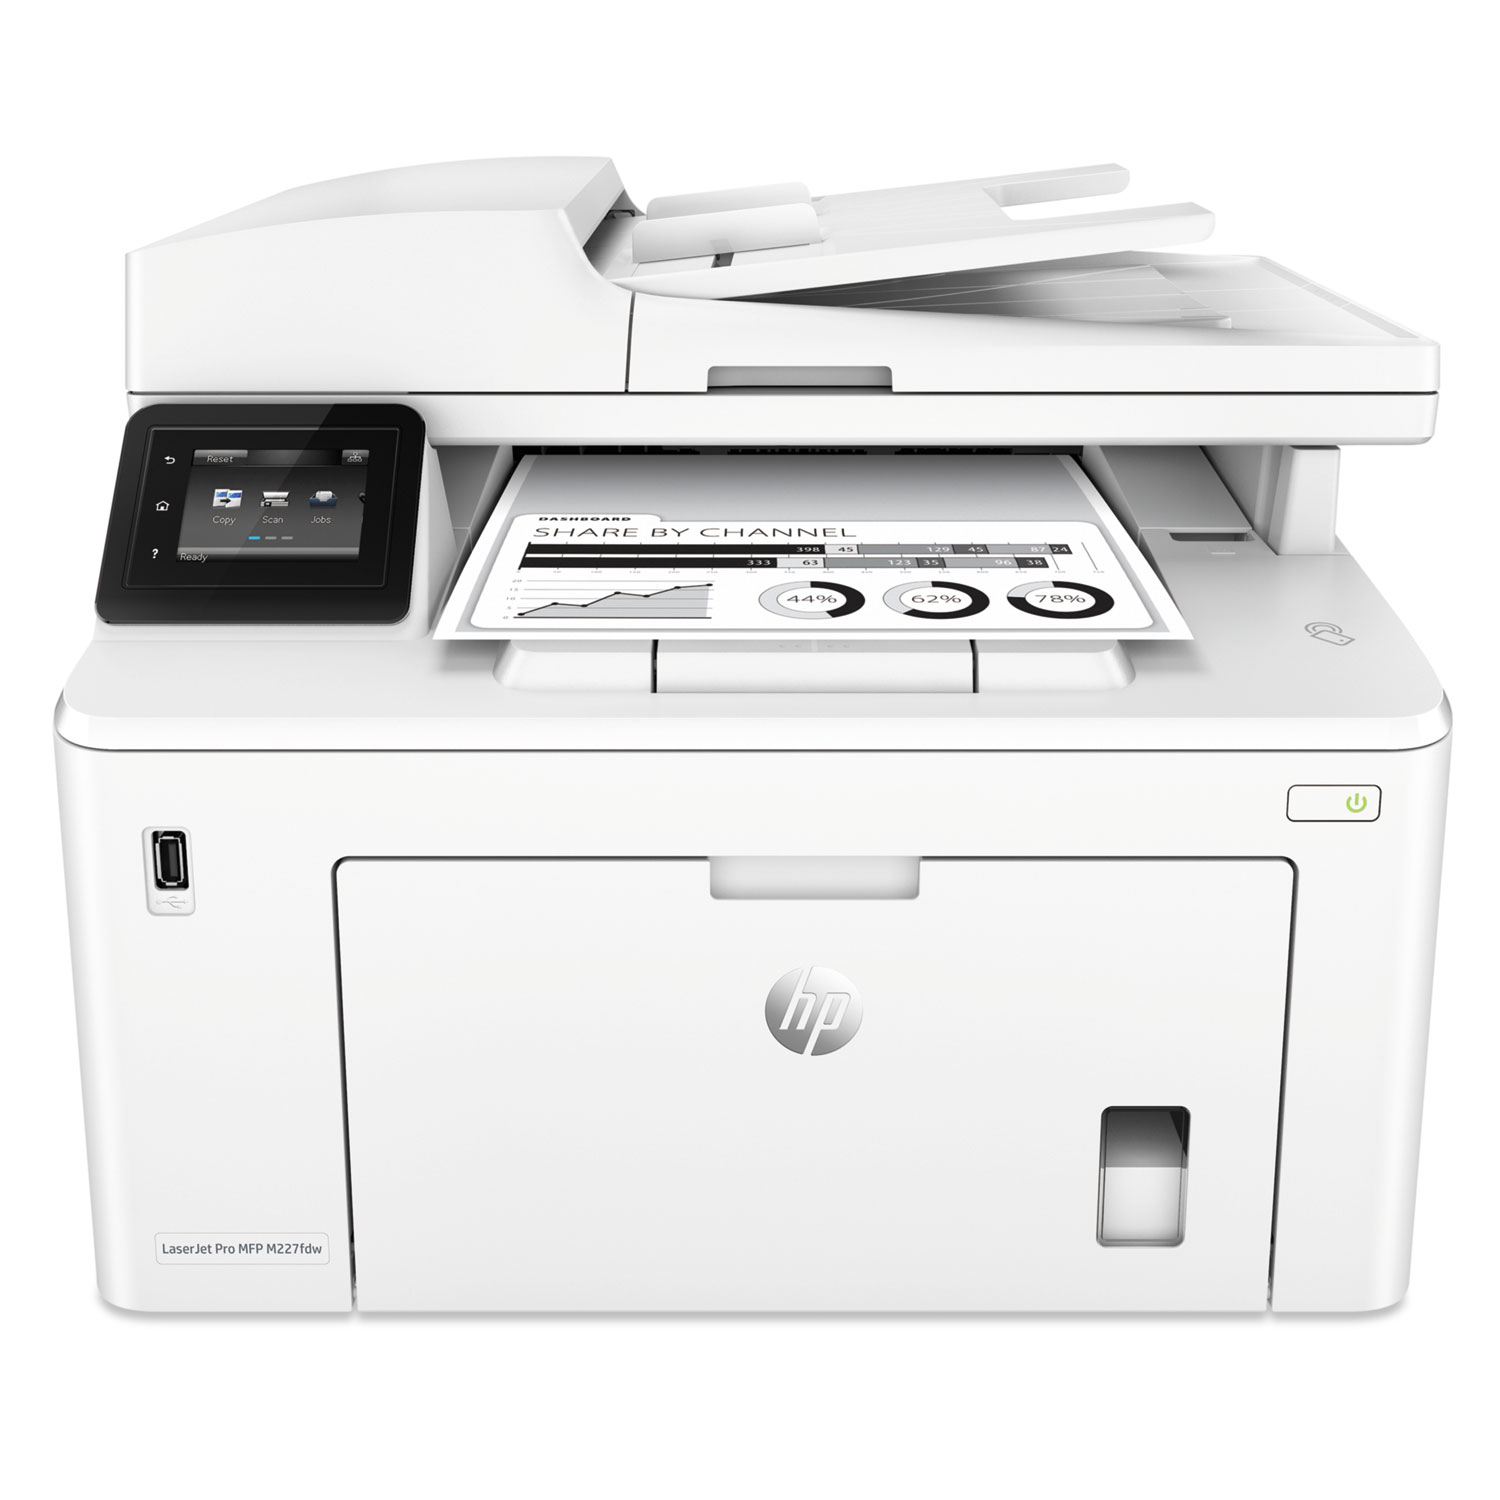 LaserJet Pro MFP M227fdw Printer, Copy/Fax/Print/Scan